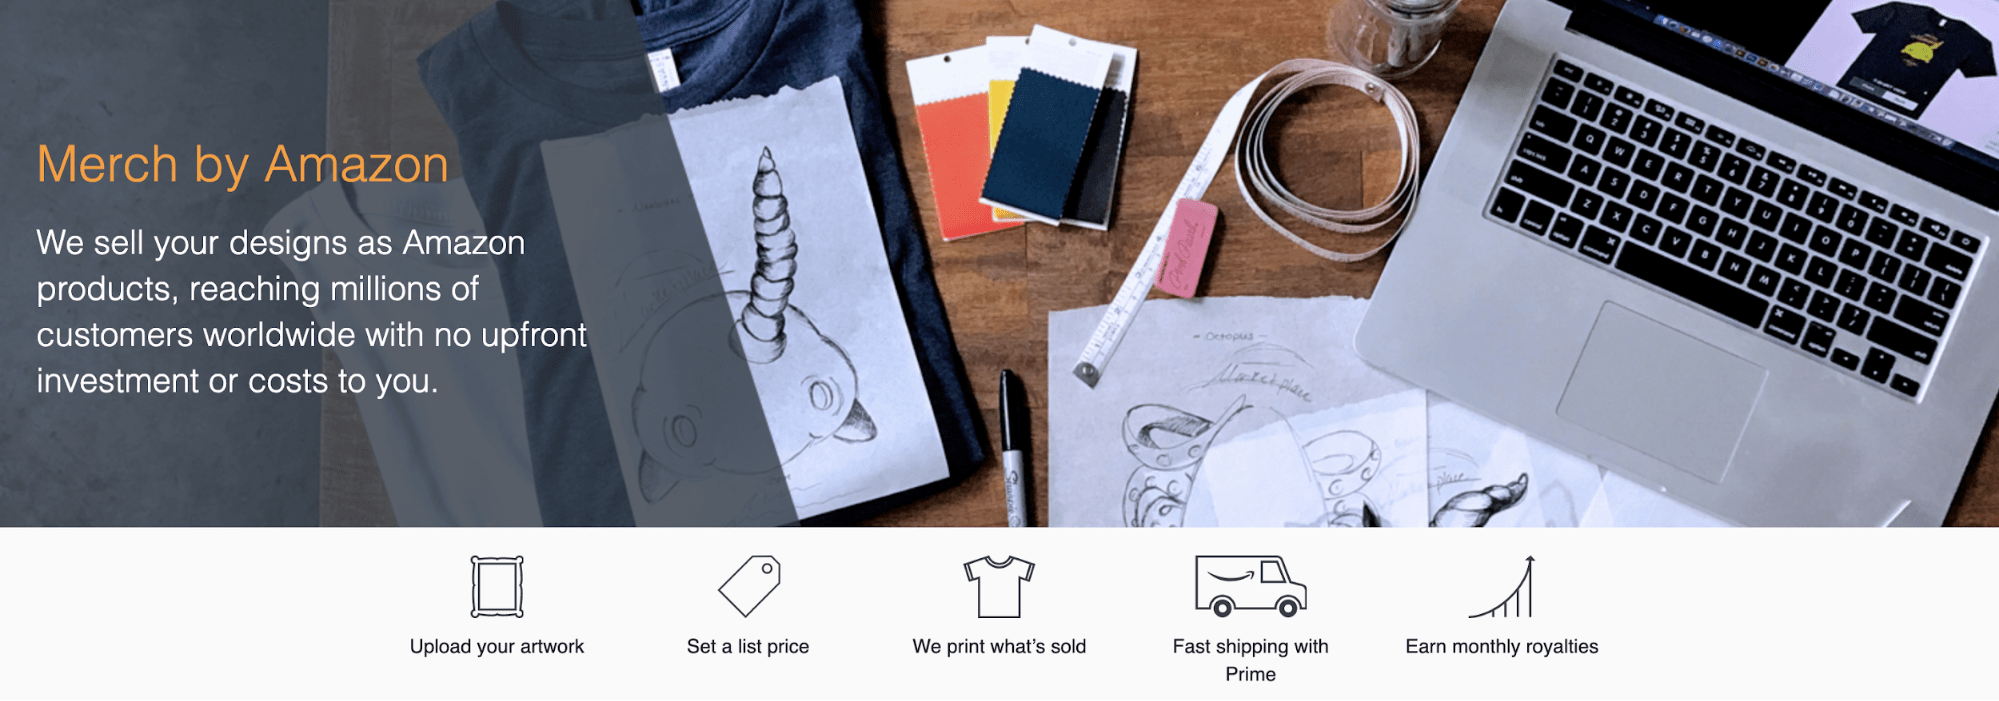 Sell your designs with AmazonMerch